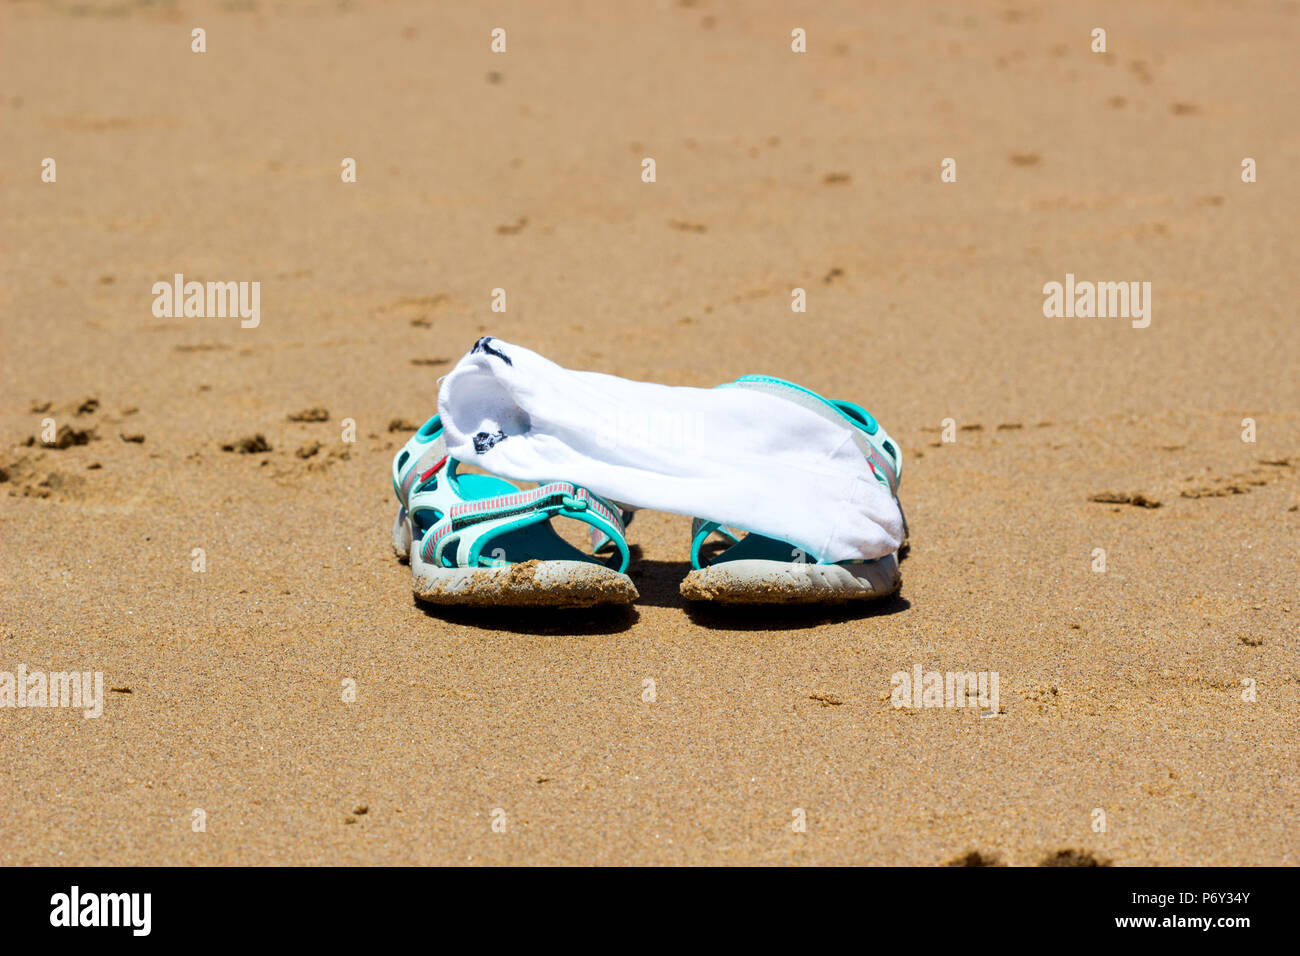 503e35182e18 Summer vacation concept. Flip flops on a sandy ocean beach   Shoes in the  Beach on Sand